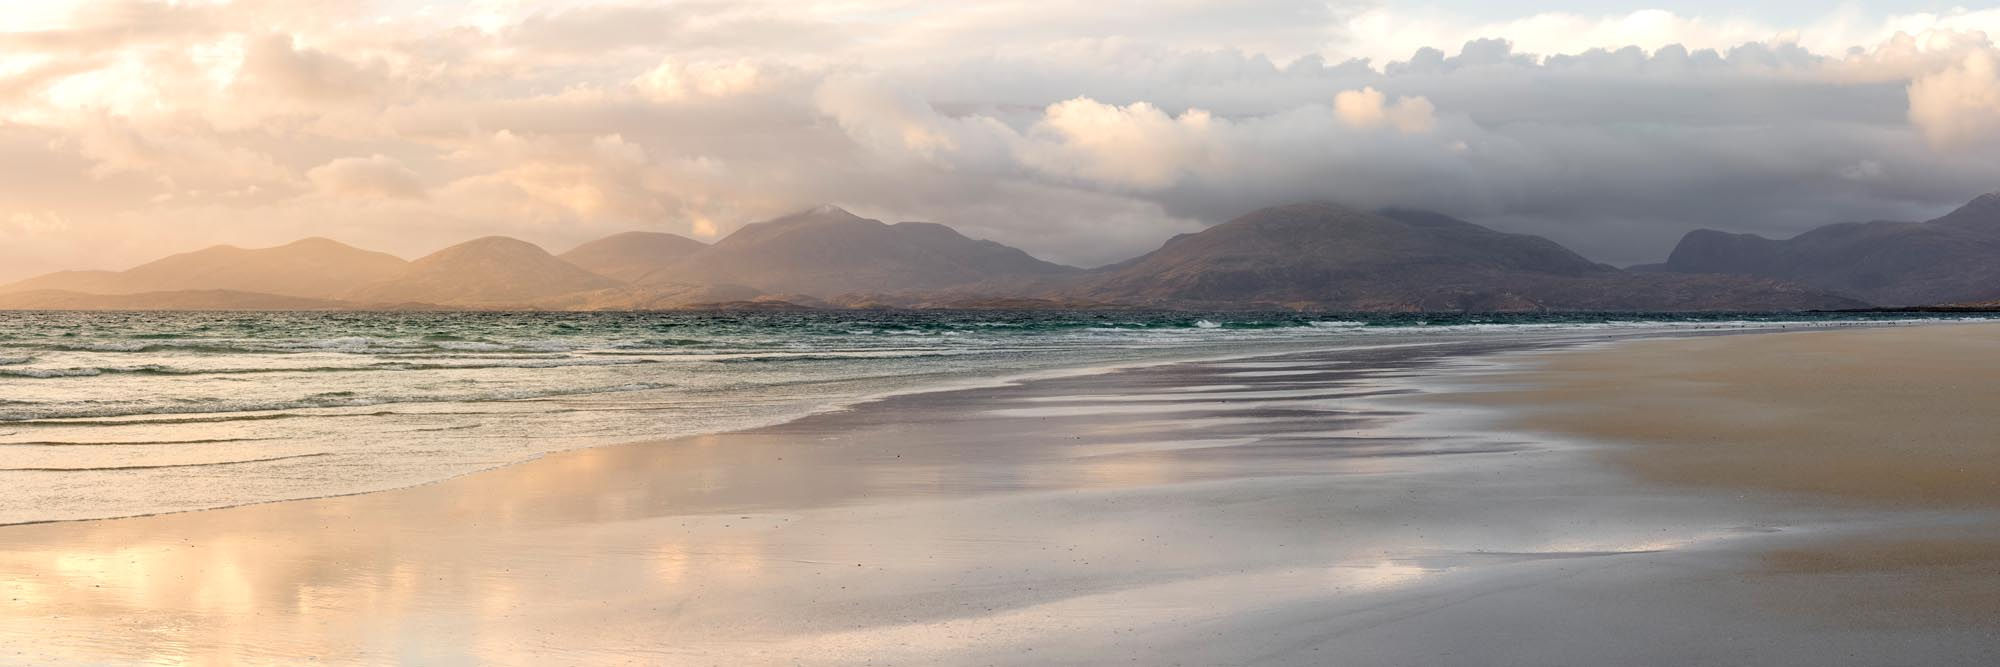 Print of the beautiful white sand beach tin the outer Hebrides